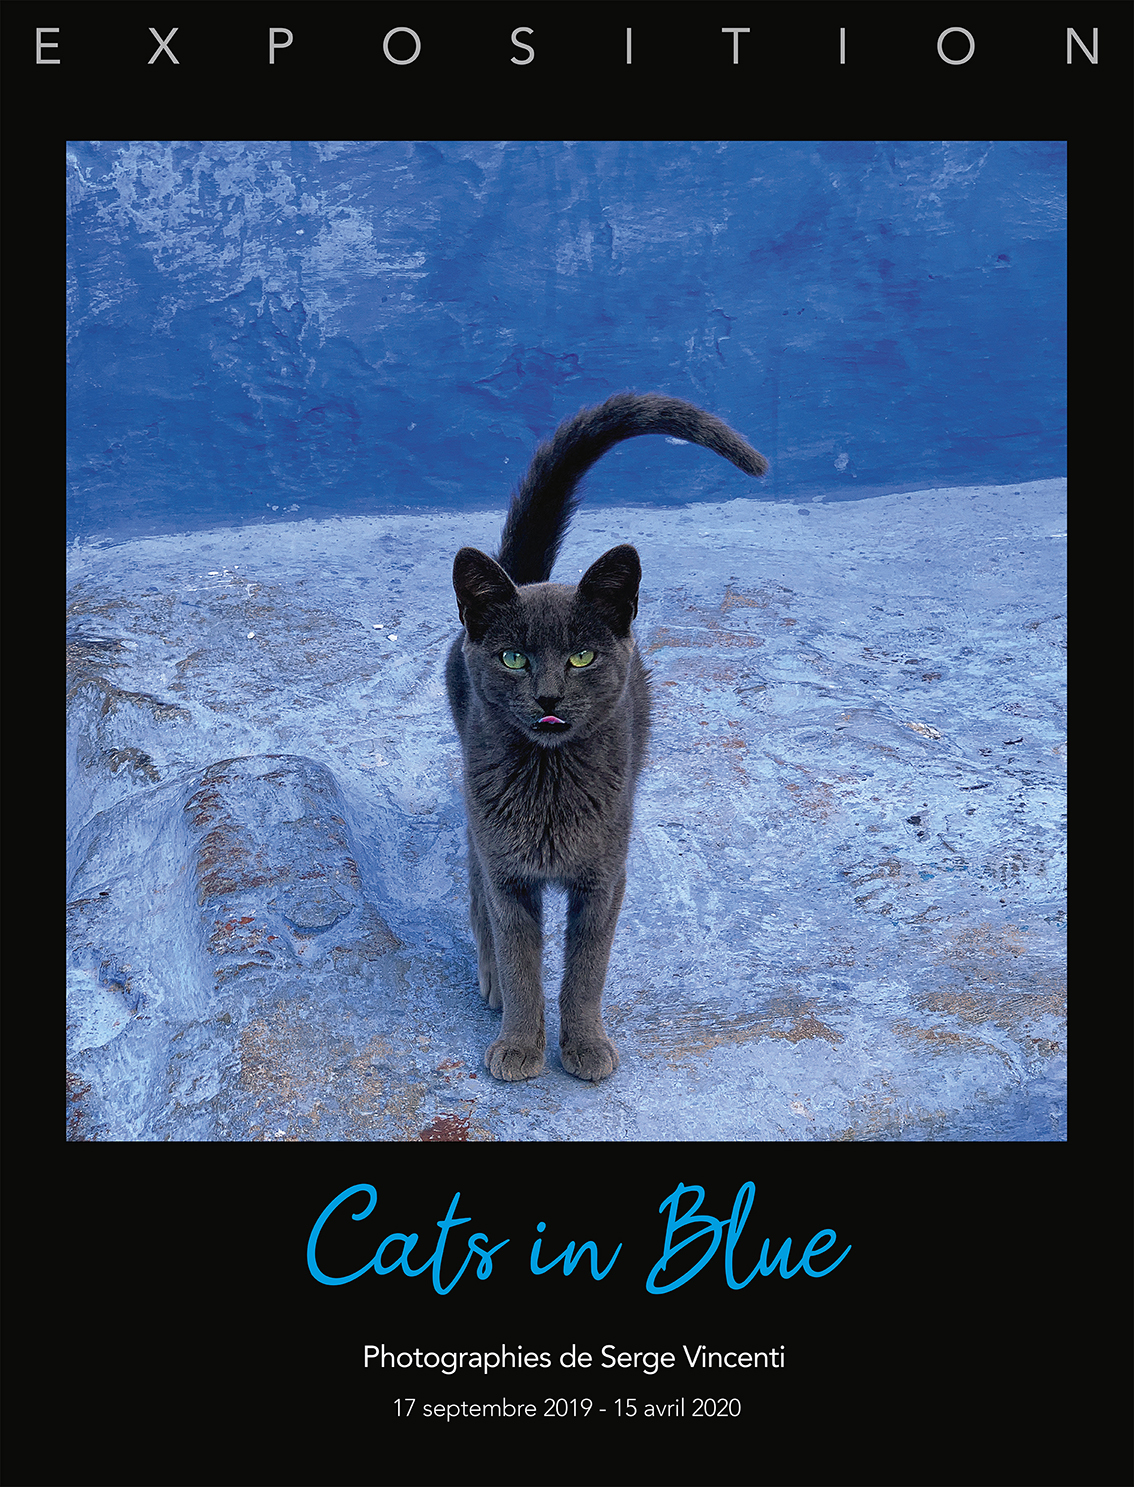 Exposition photographique Cats in Blue